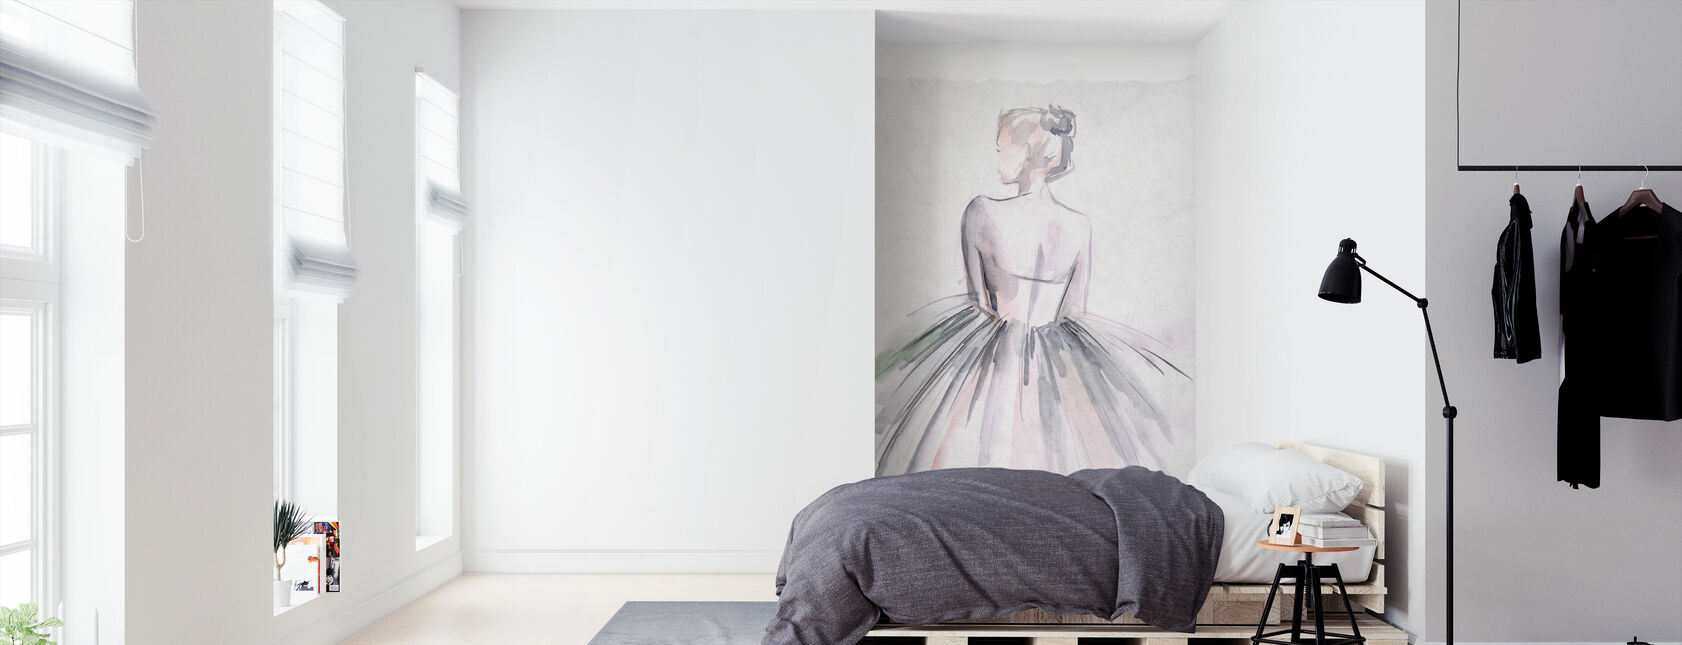 Watercolor Ballerina - Wallpaper - Bedroom